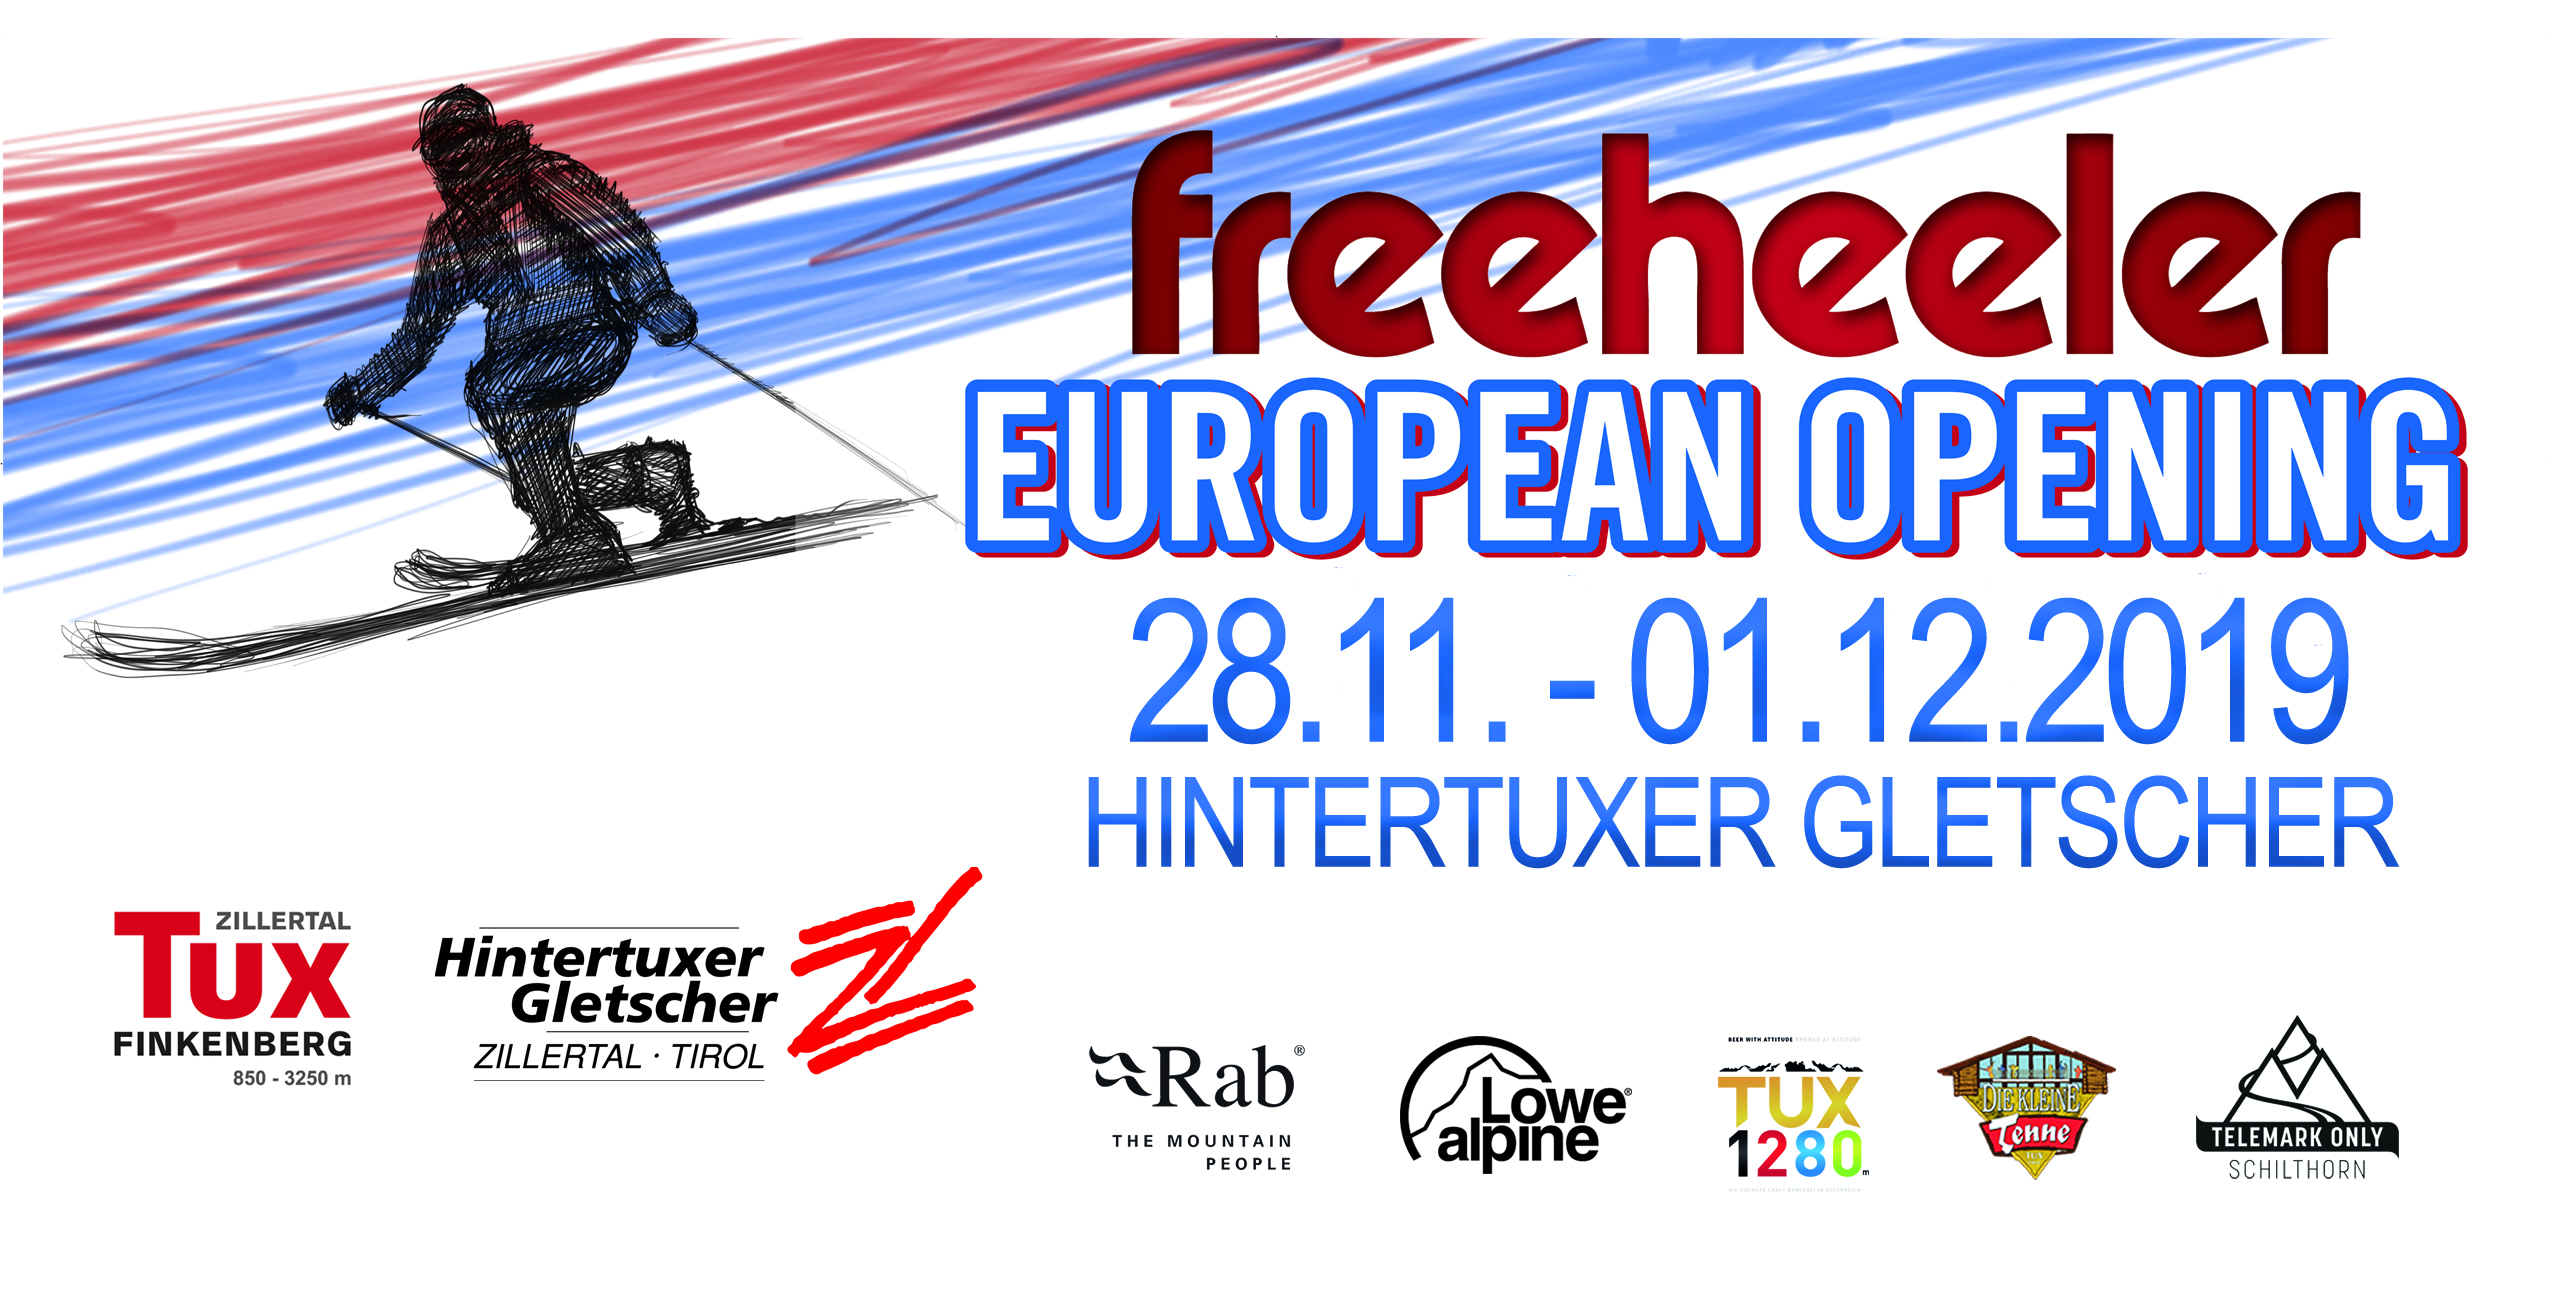 Freeheeler European Opening 2019